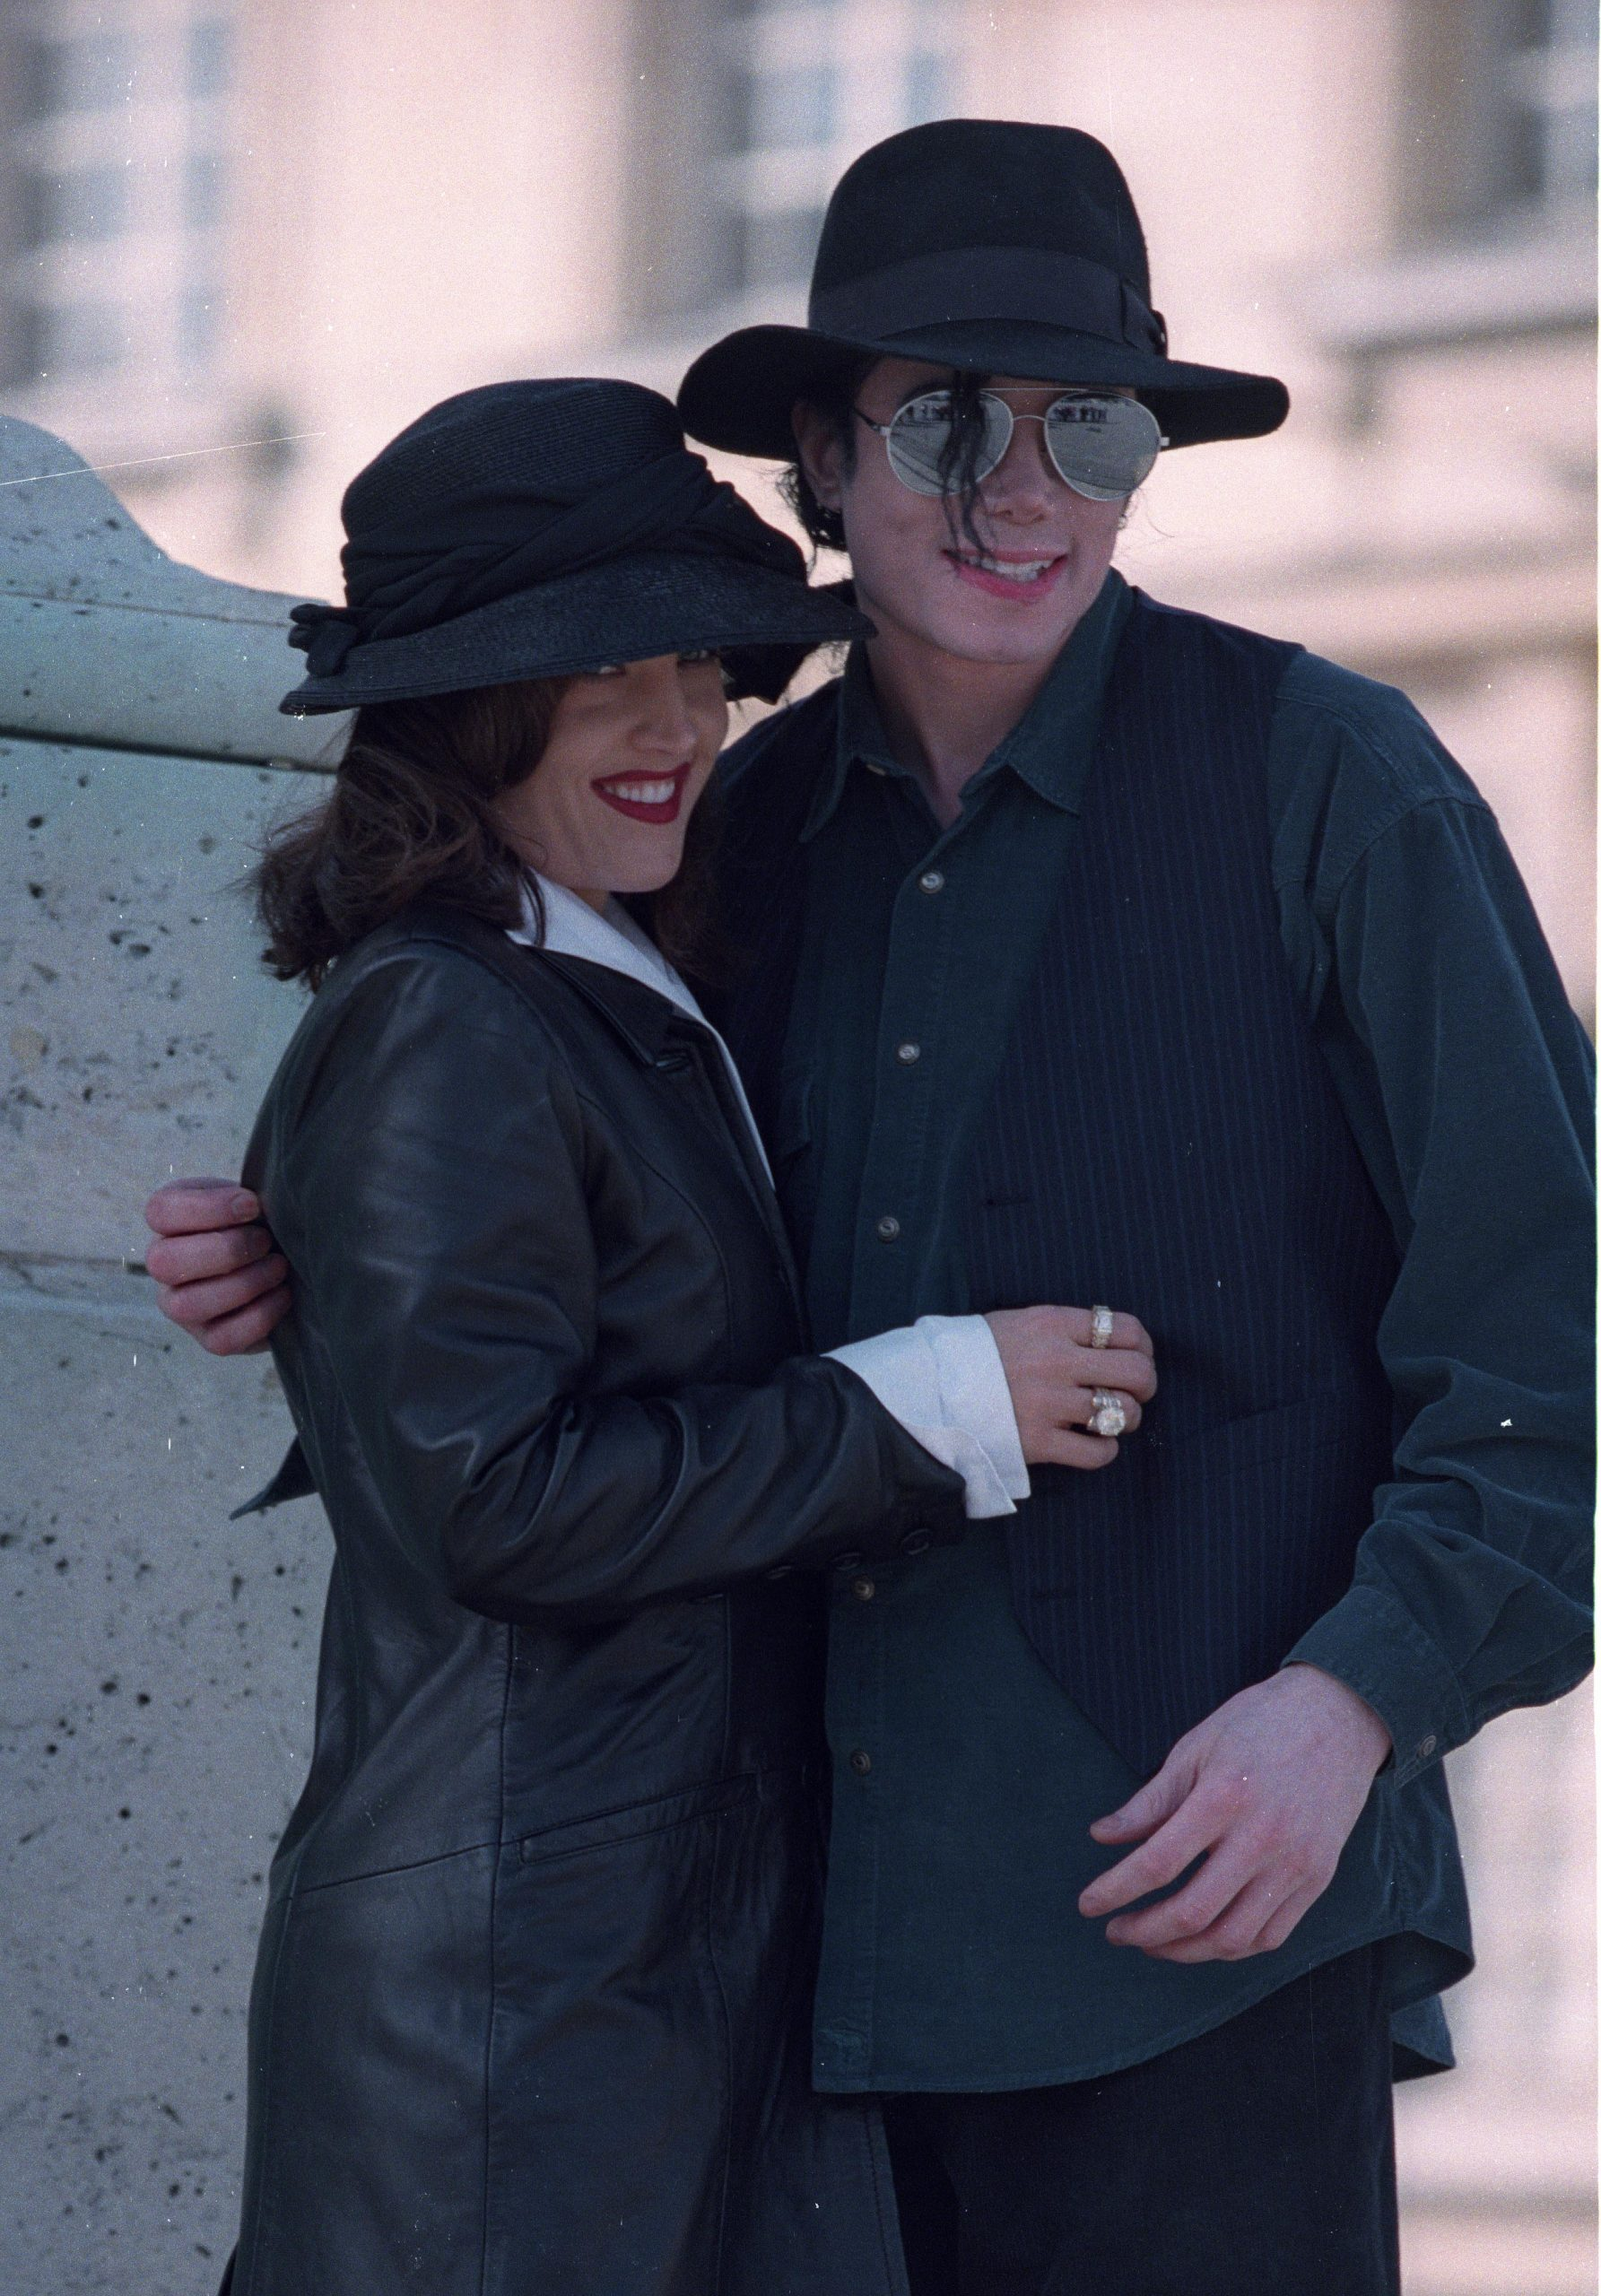 PARIS - Michael Jackson and wife Lisa Marie Presley in 1995 at Versailles, France.